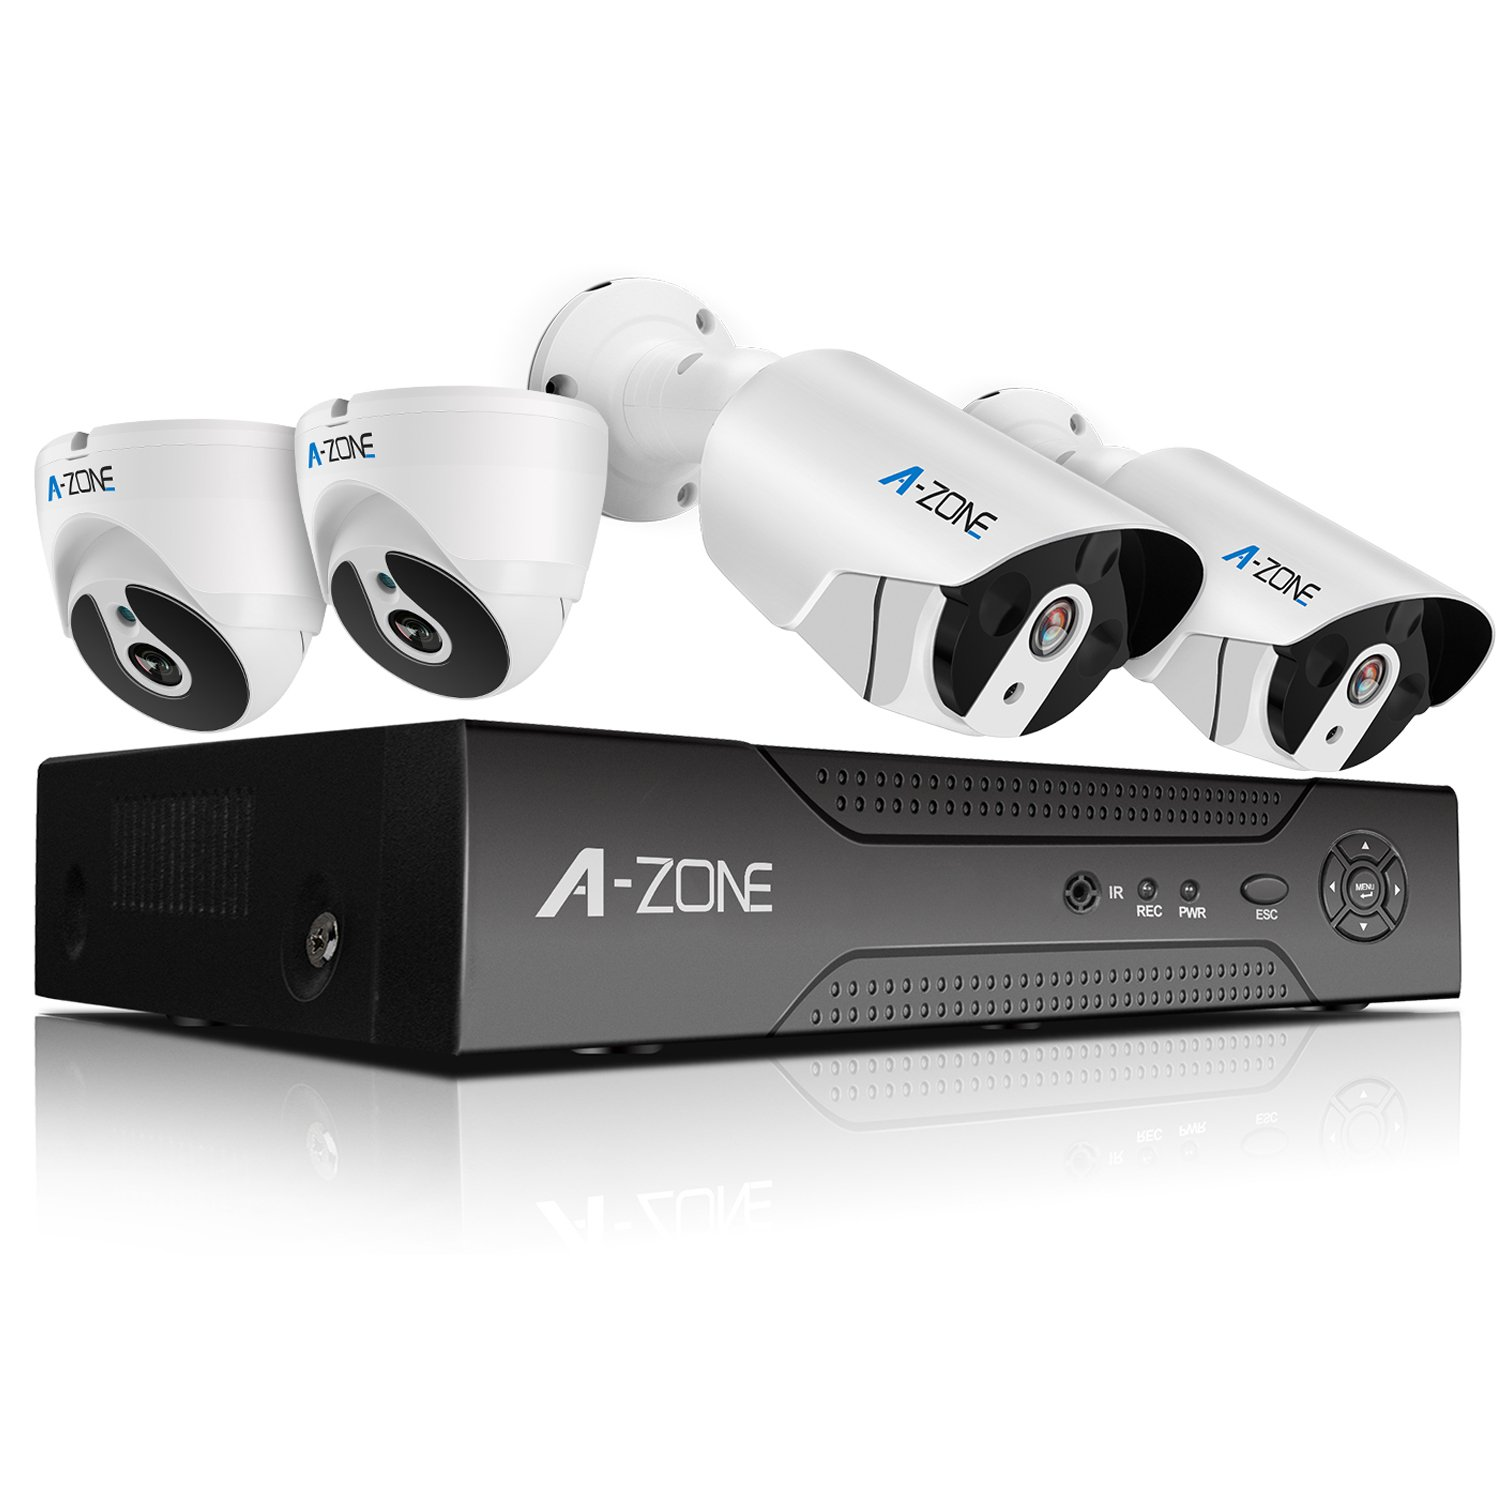 A-ZONE Full HD-TVI Security Camera System 4 Channel 1080P Surveillance DVR with 2x 1080P Weatherproof IP67 Dome Cameras and 2x 1080P Bullet Cameras With Super Nice IR Night Vision,included 1TB HDD